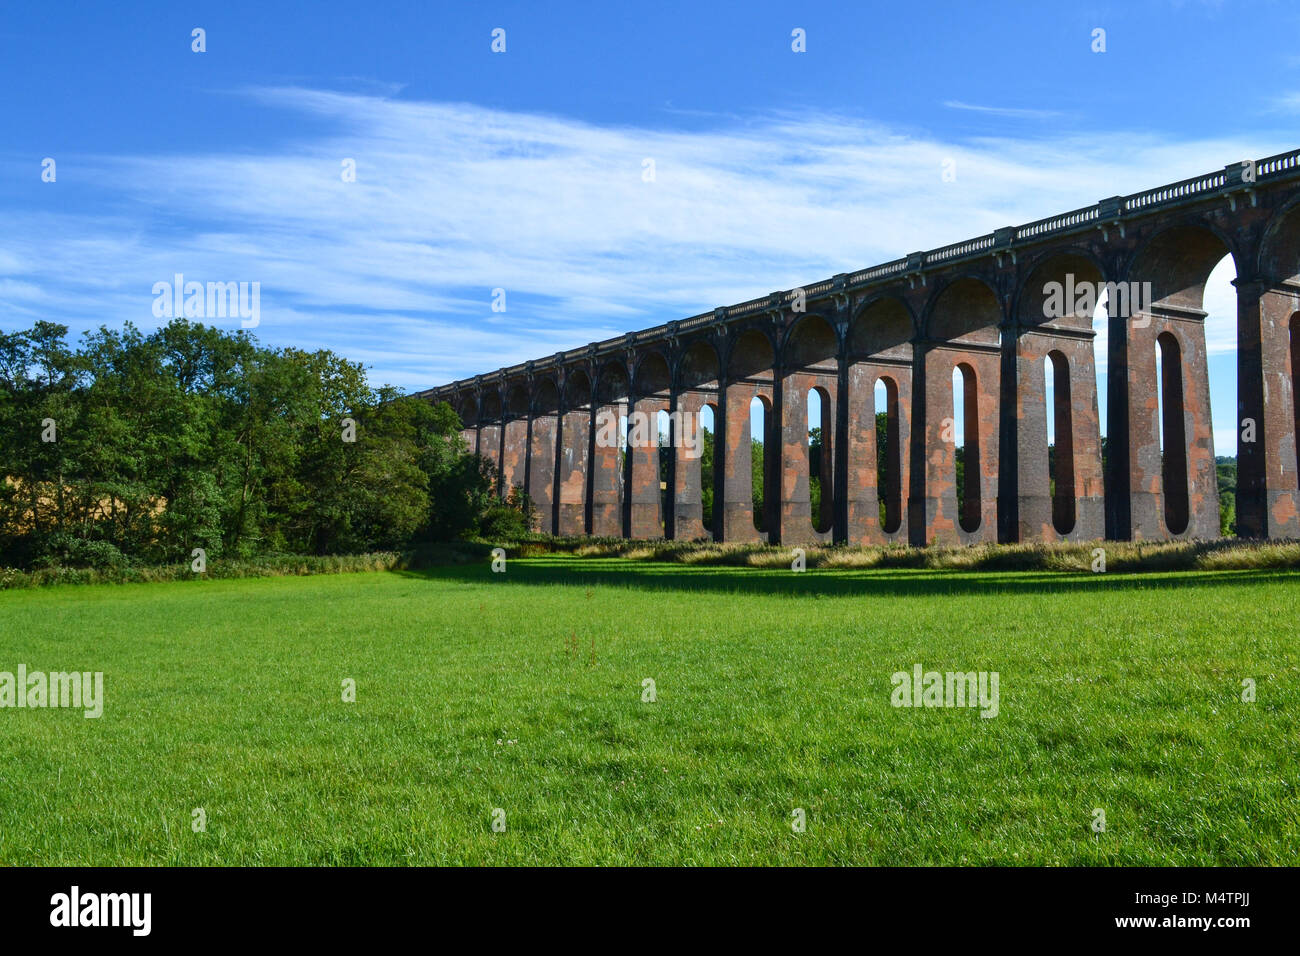 Railway Viaduct, Haywards Heath, West Sussex, UK - Stock Image